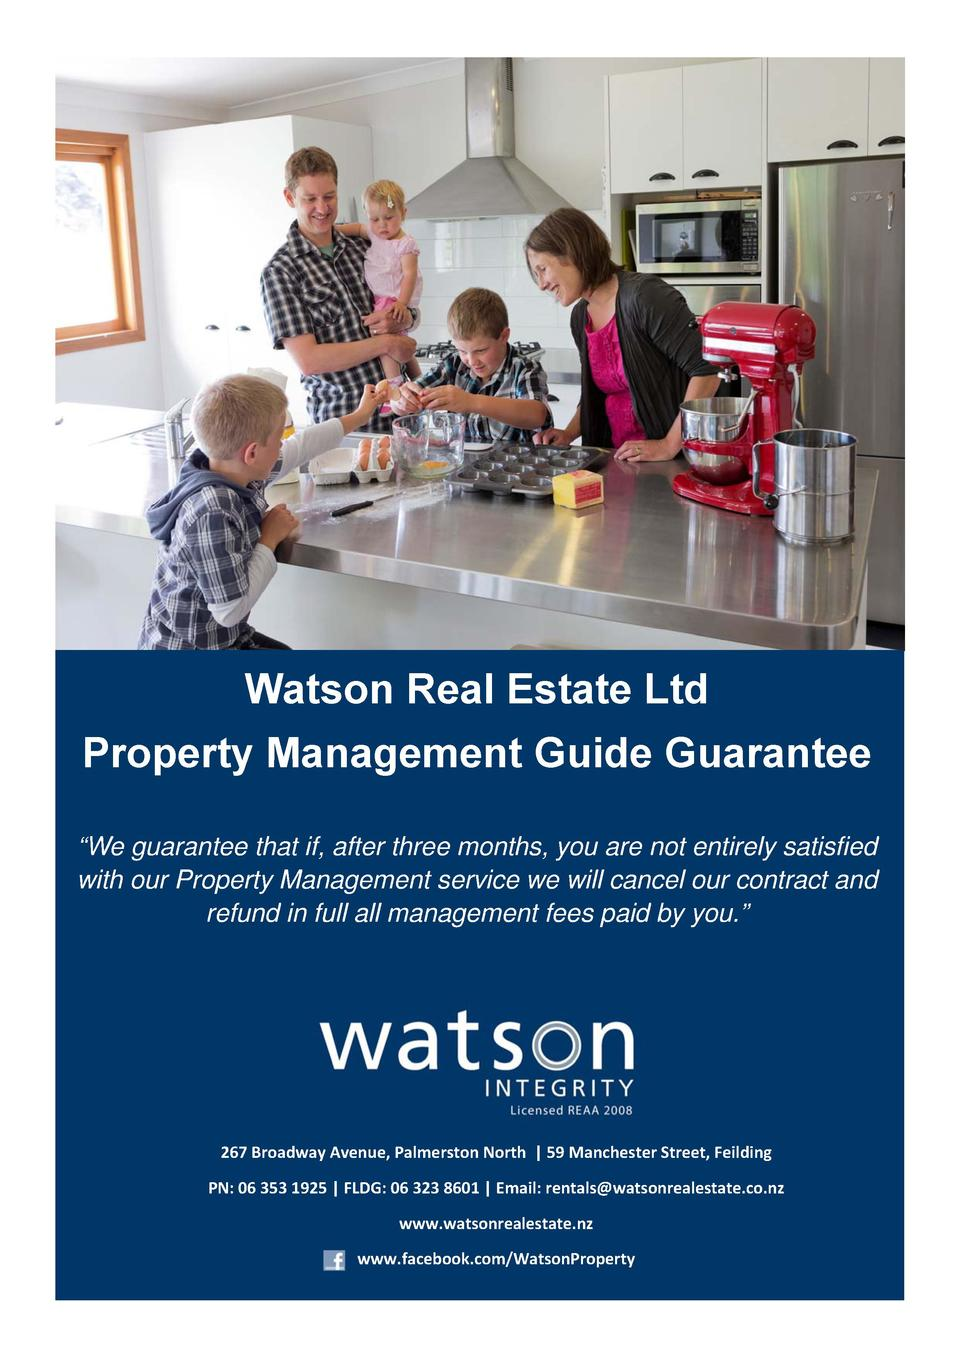 Watson Real Estate Ltd Property Management Guide Guarantee        We guarantee that if, after three months, you are no...